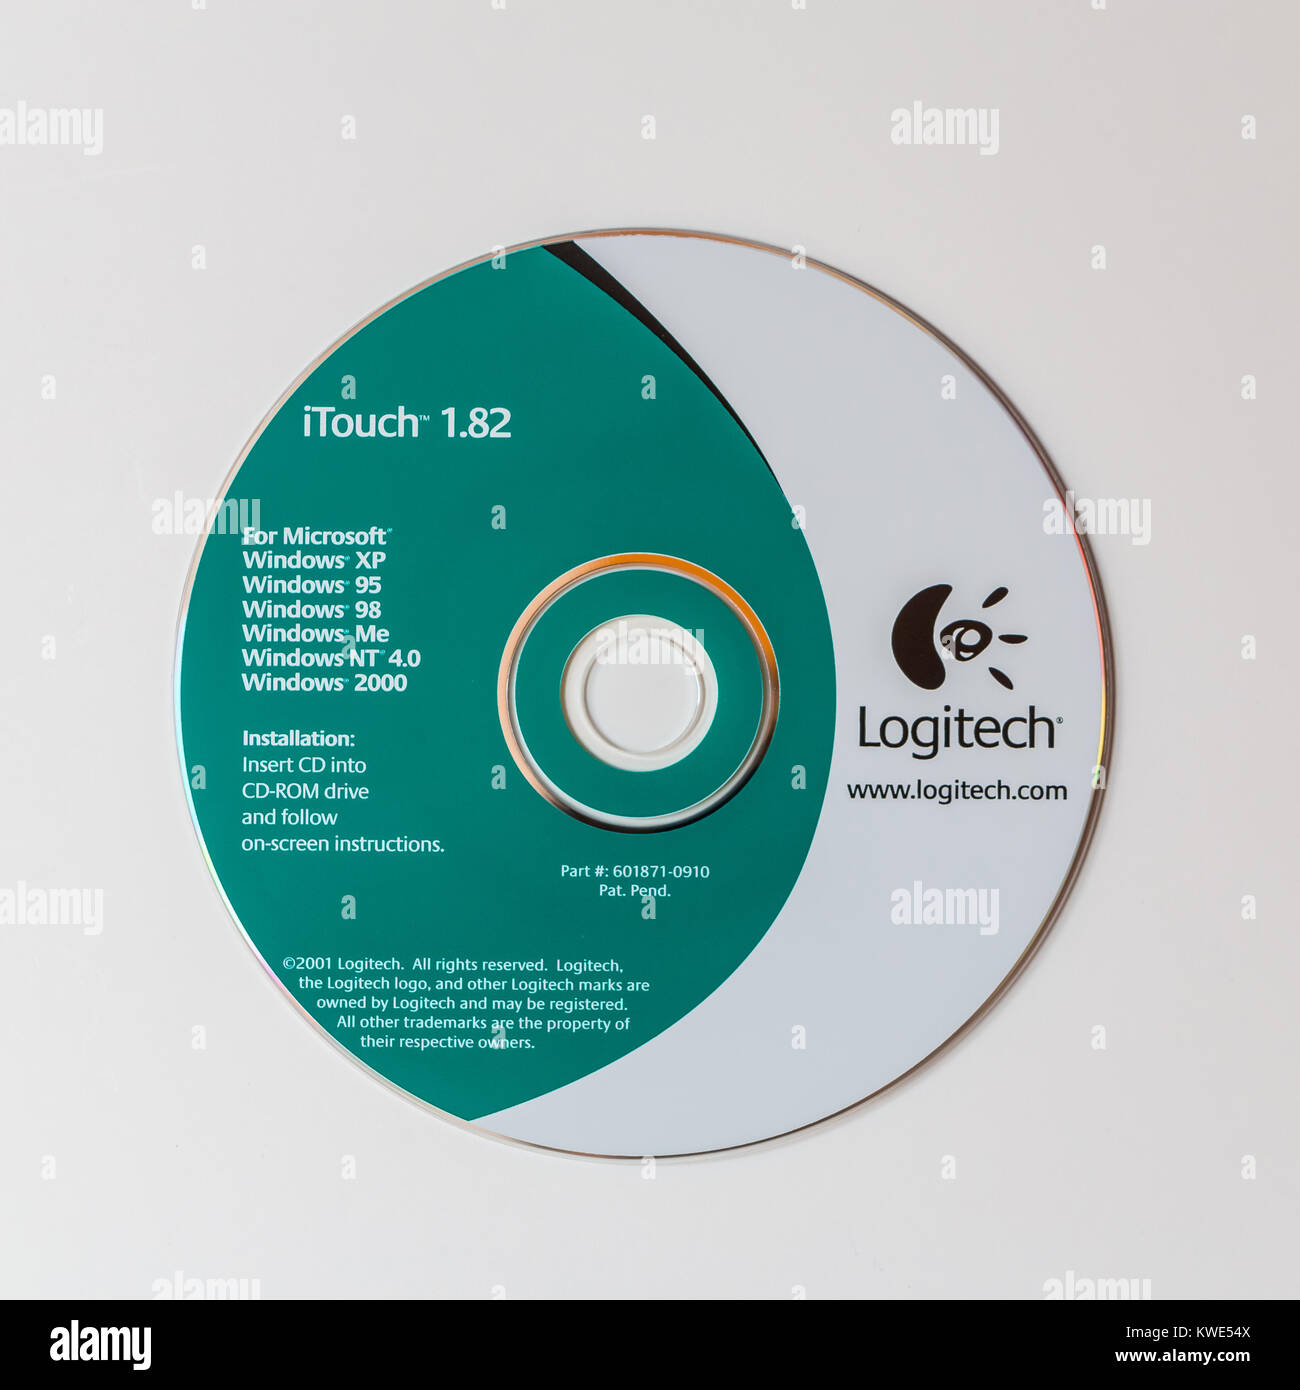 Vintage software installation cd, Logitech mouse itouch 1 82 Stock